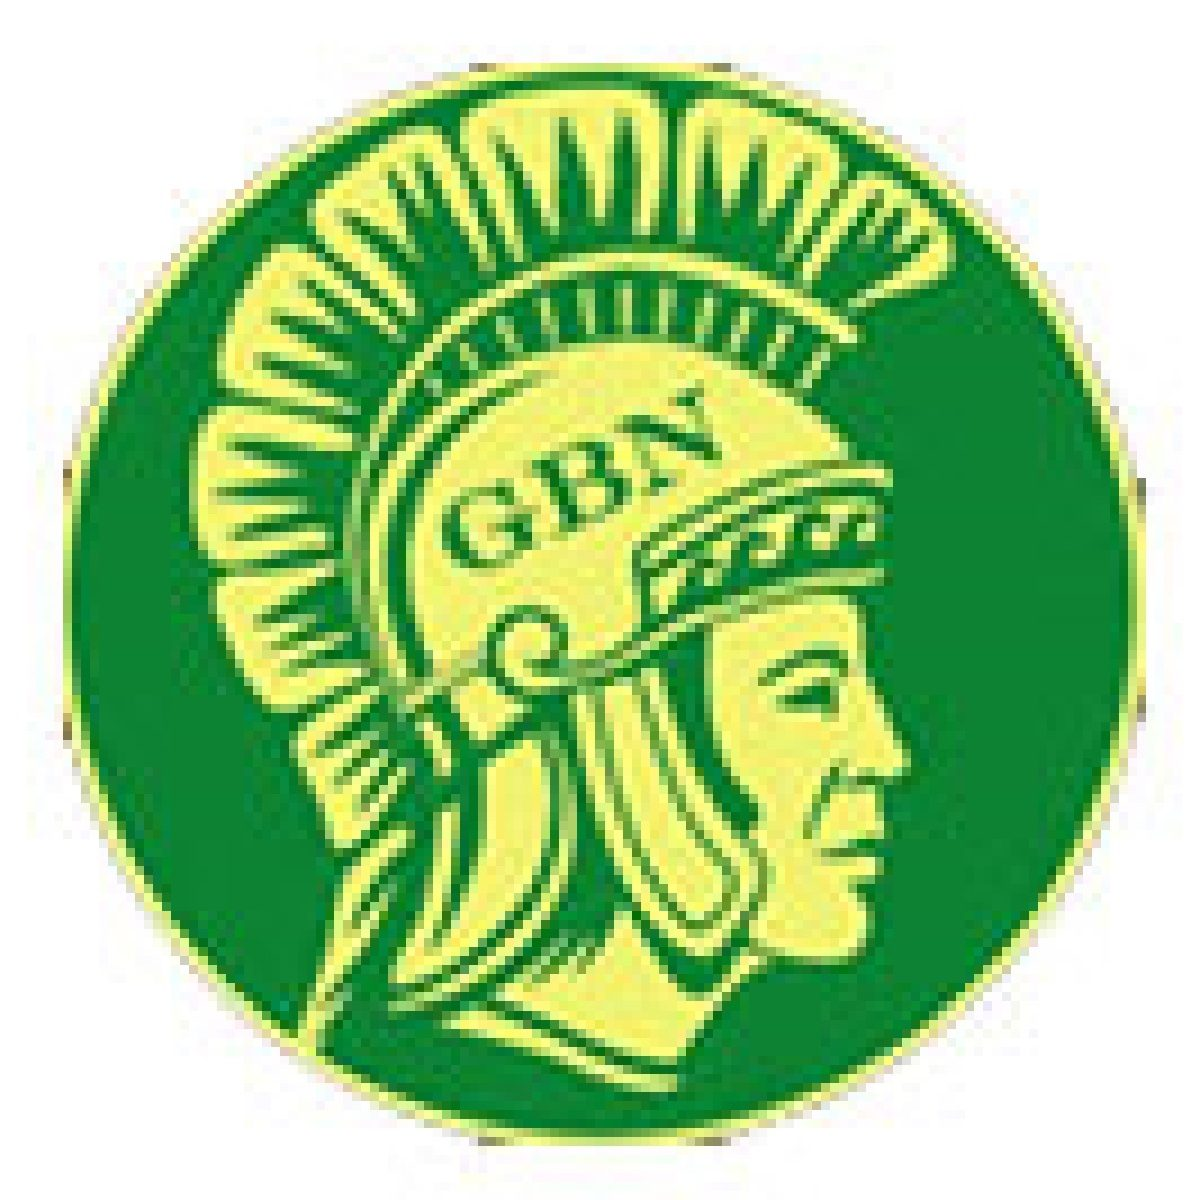 GBN logo of a man's head with a roman helmet,